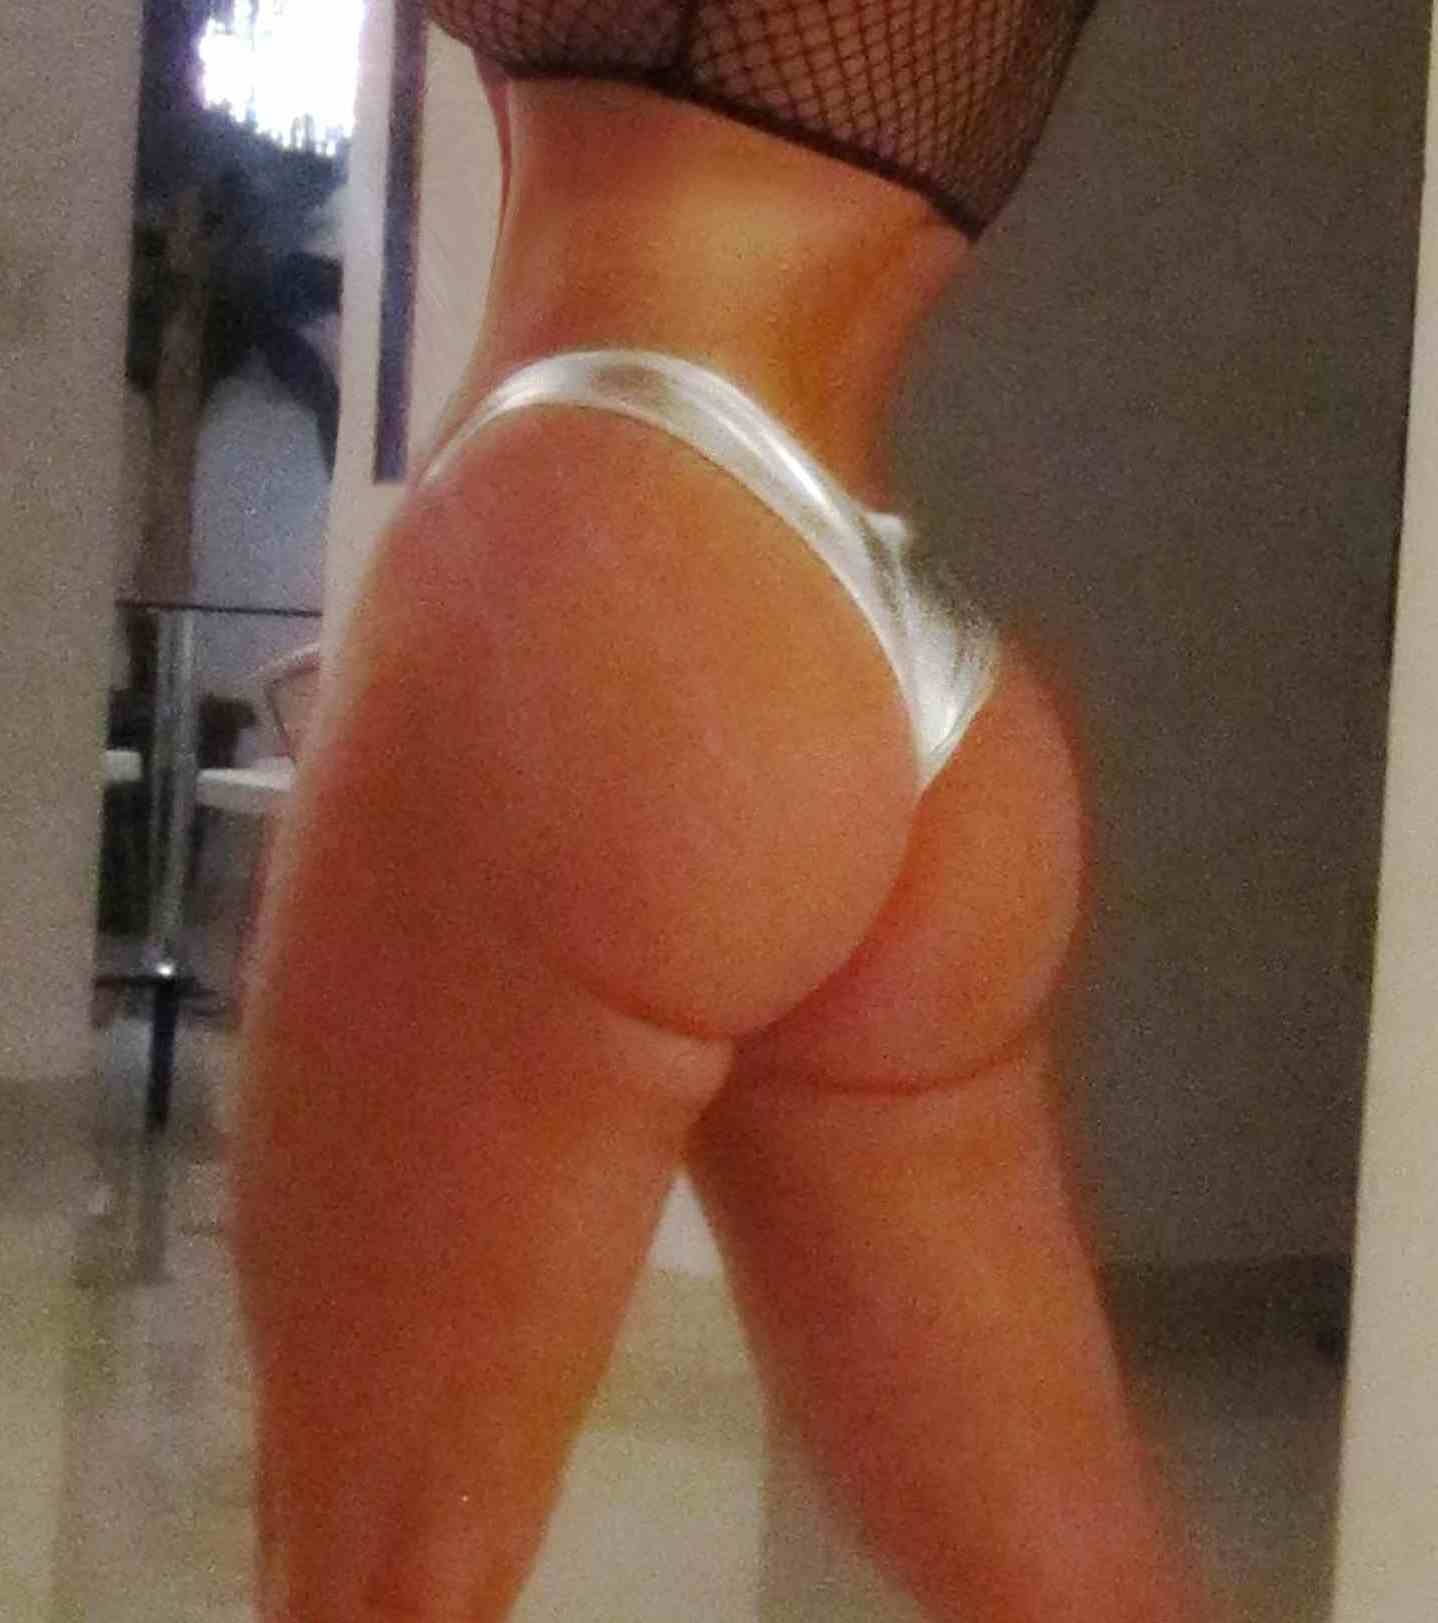 Big ass image gallery